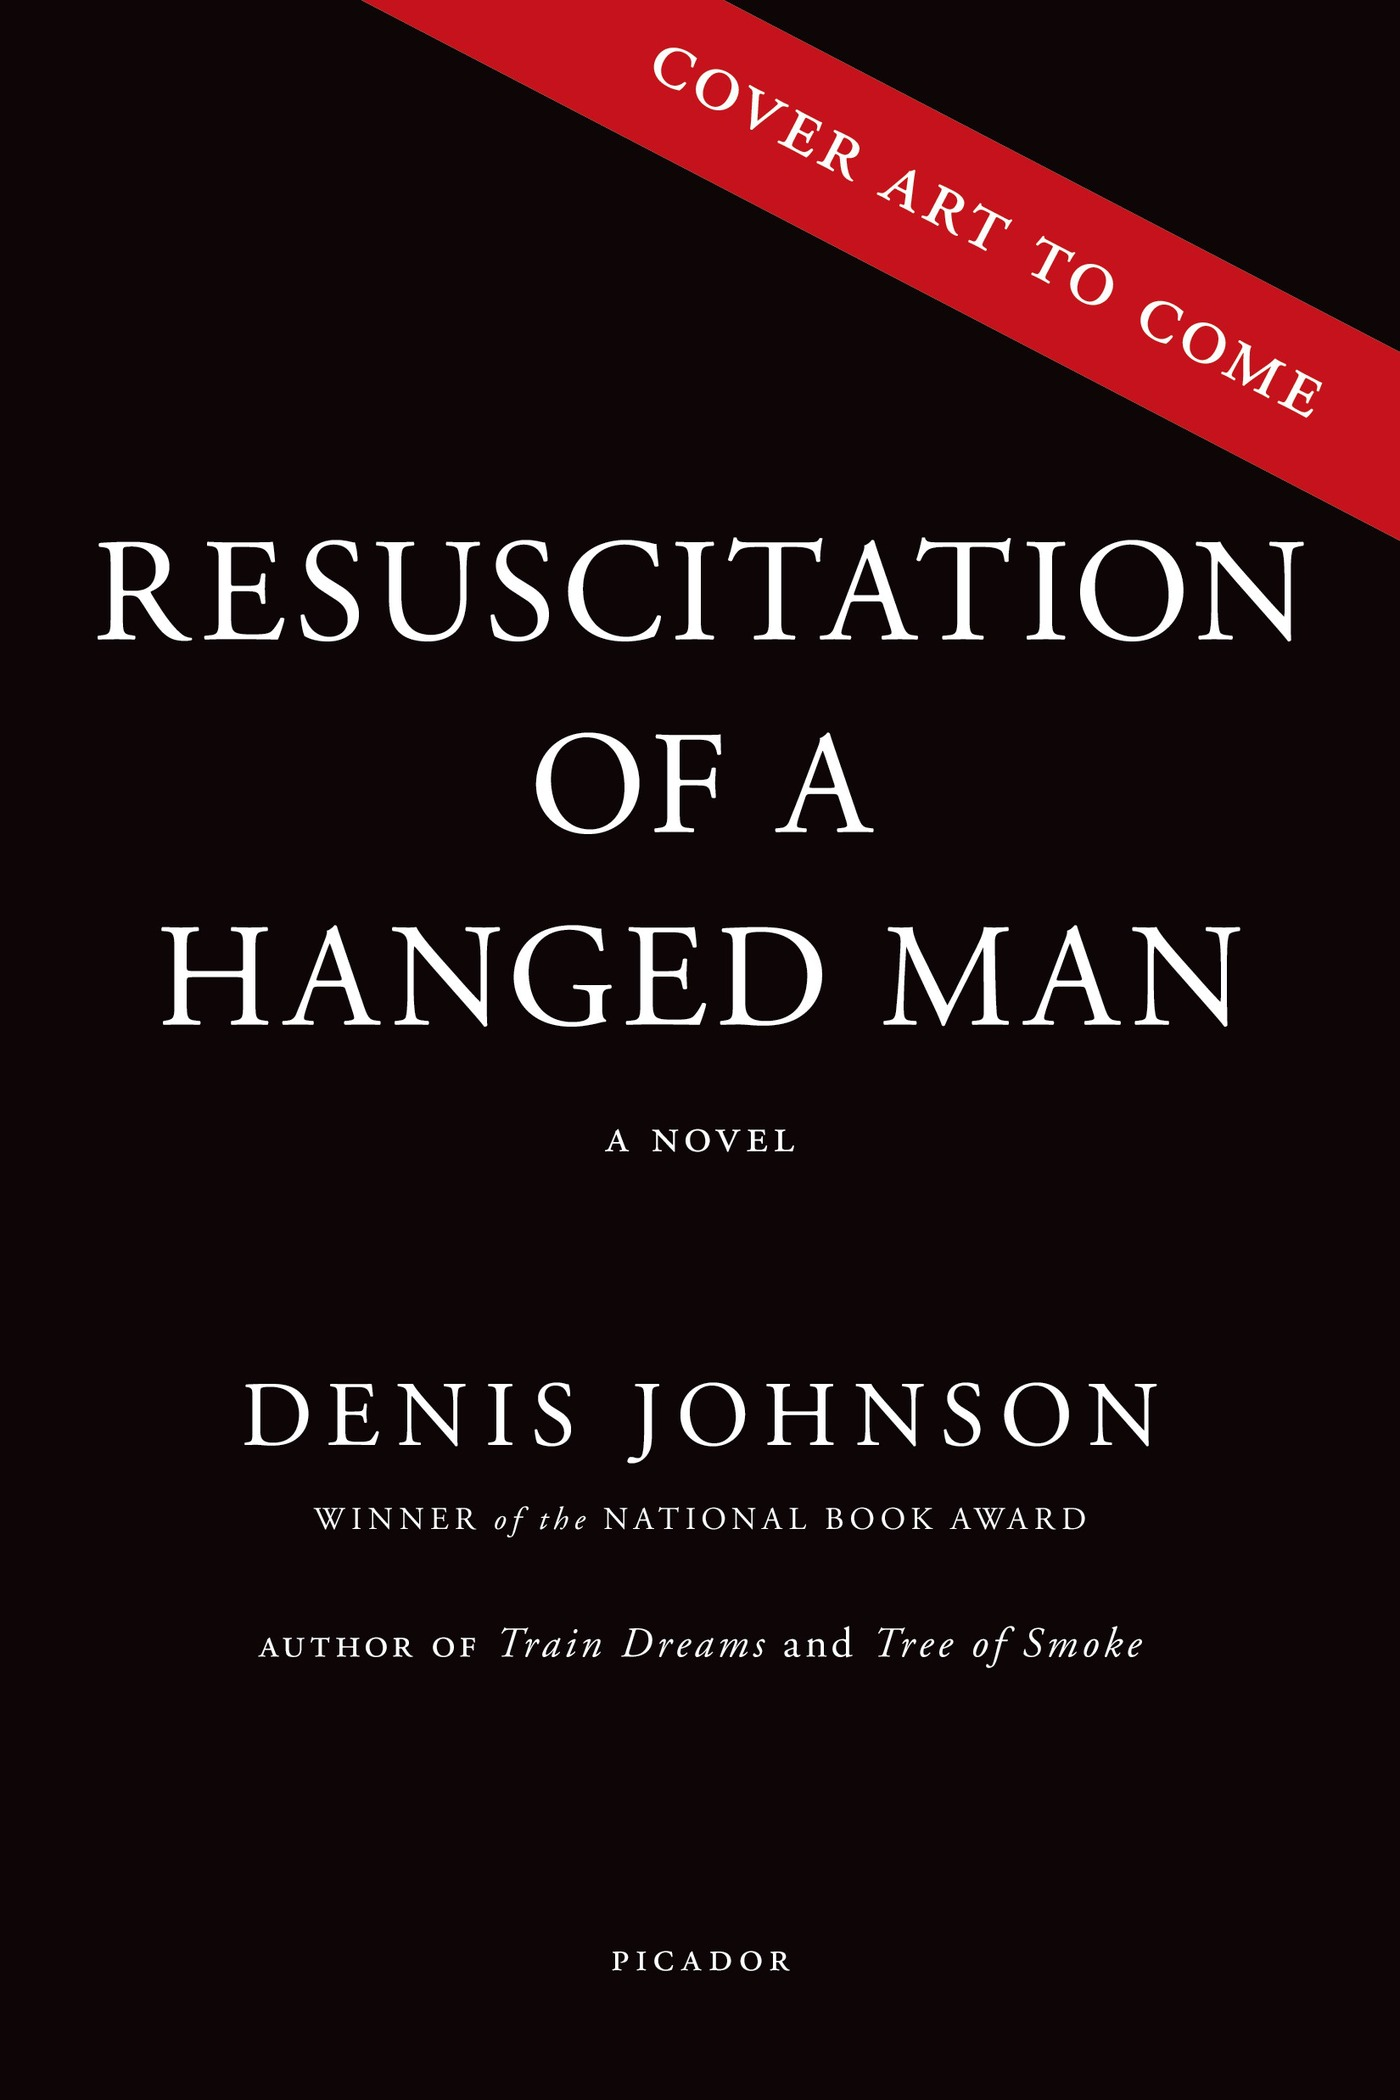 The Resuscitation of a Hanged Man